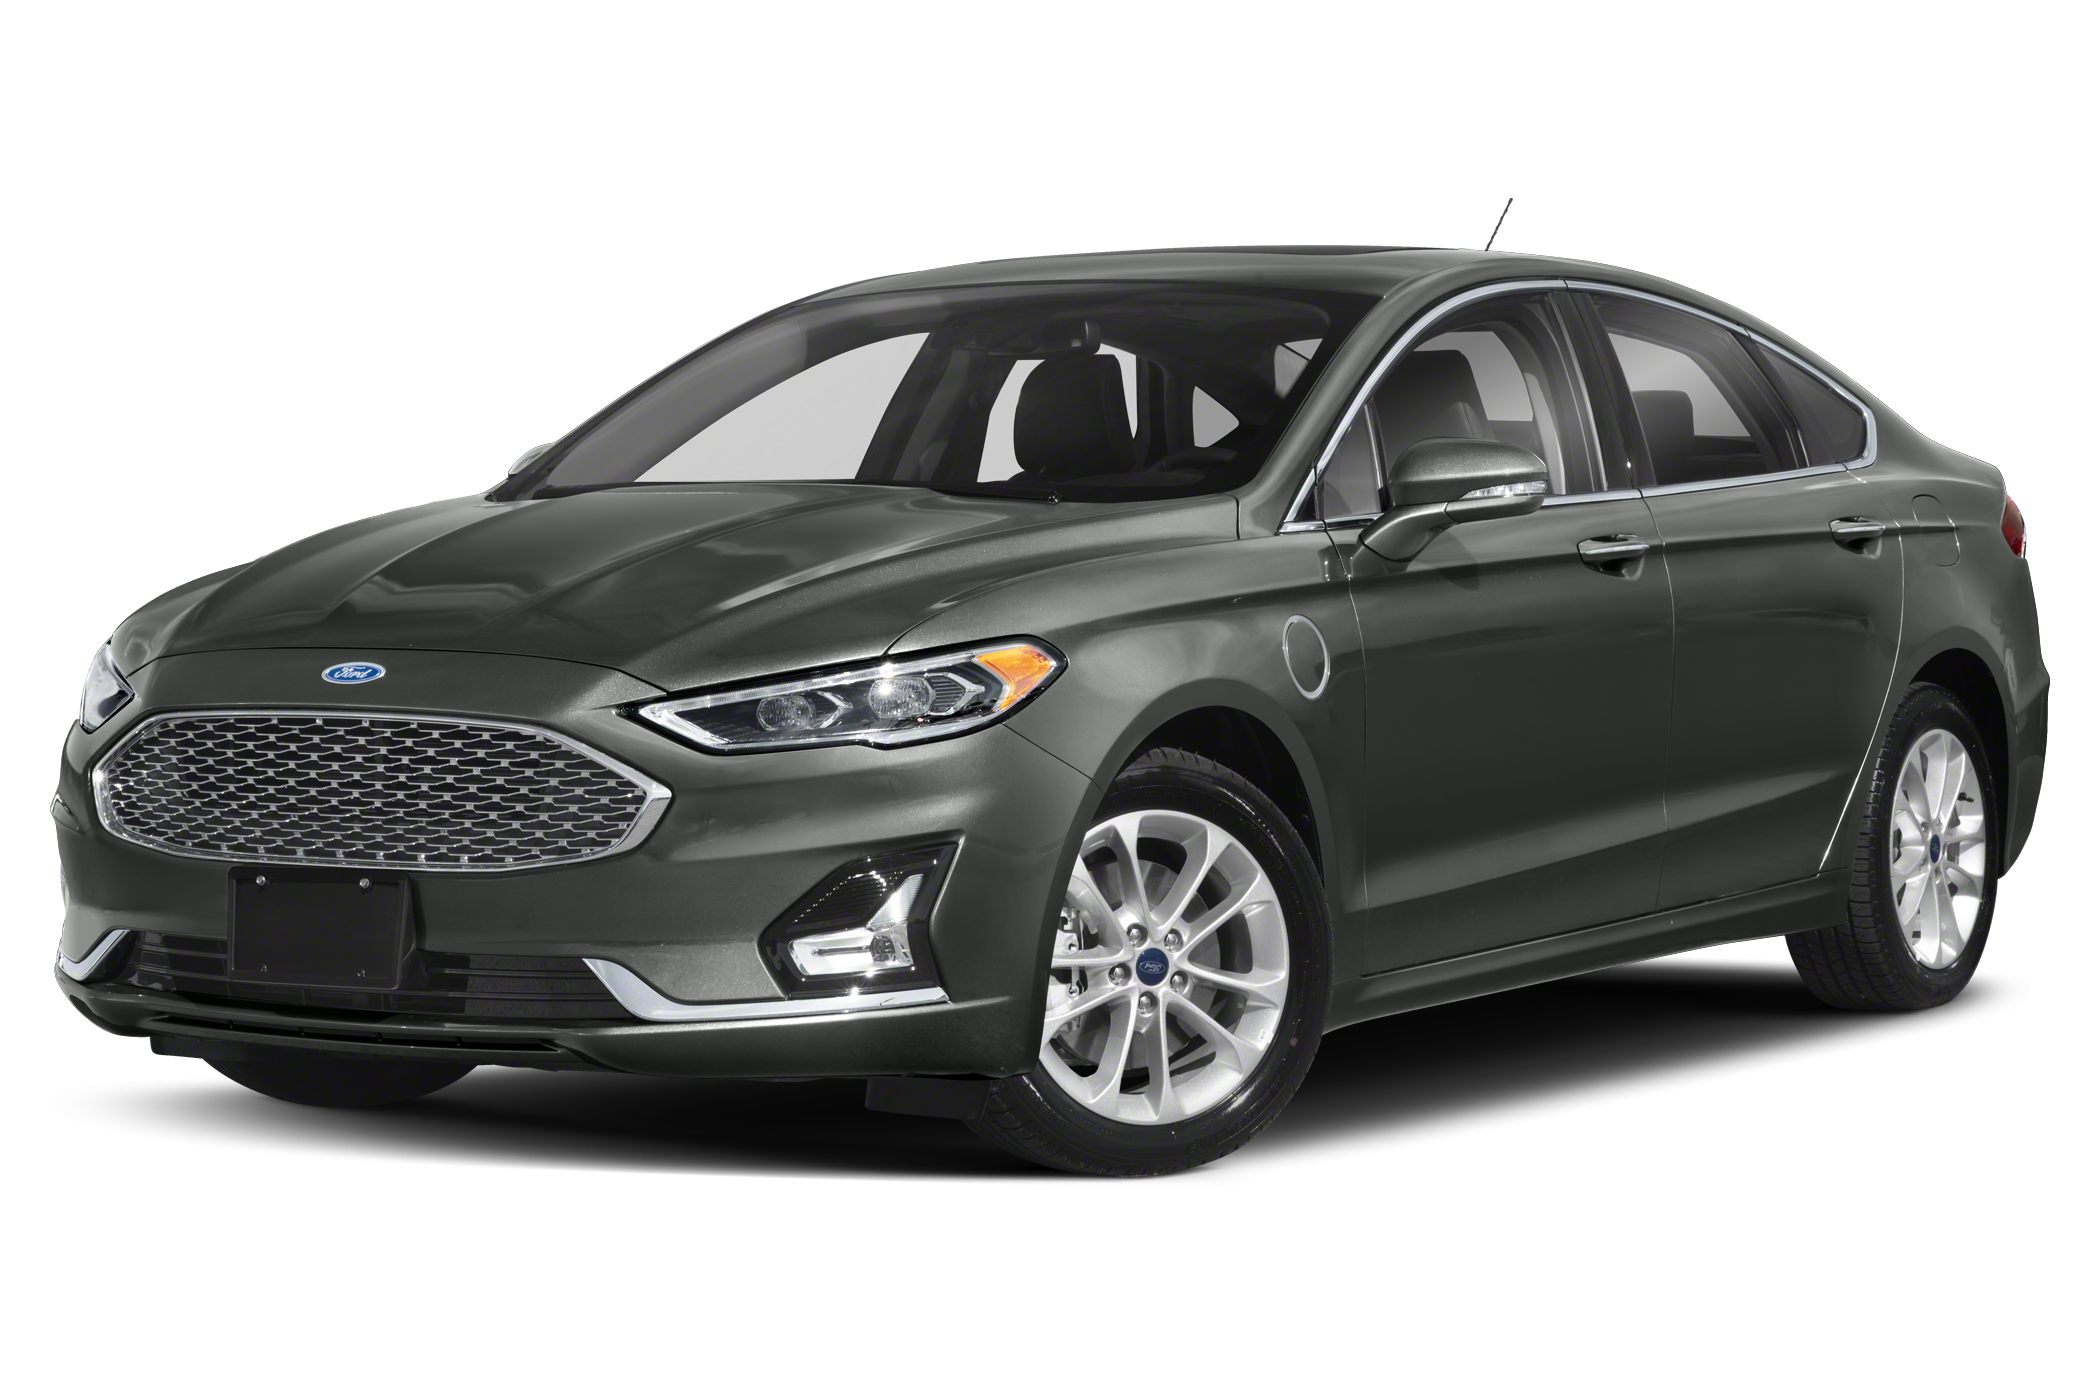 2020 Ford Fusion Energi Exterior and Interior